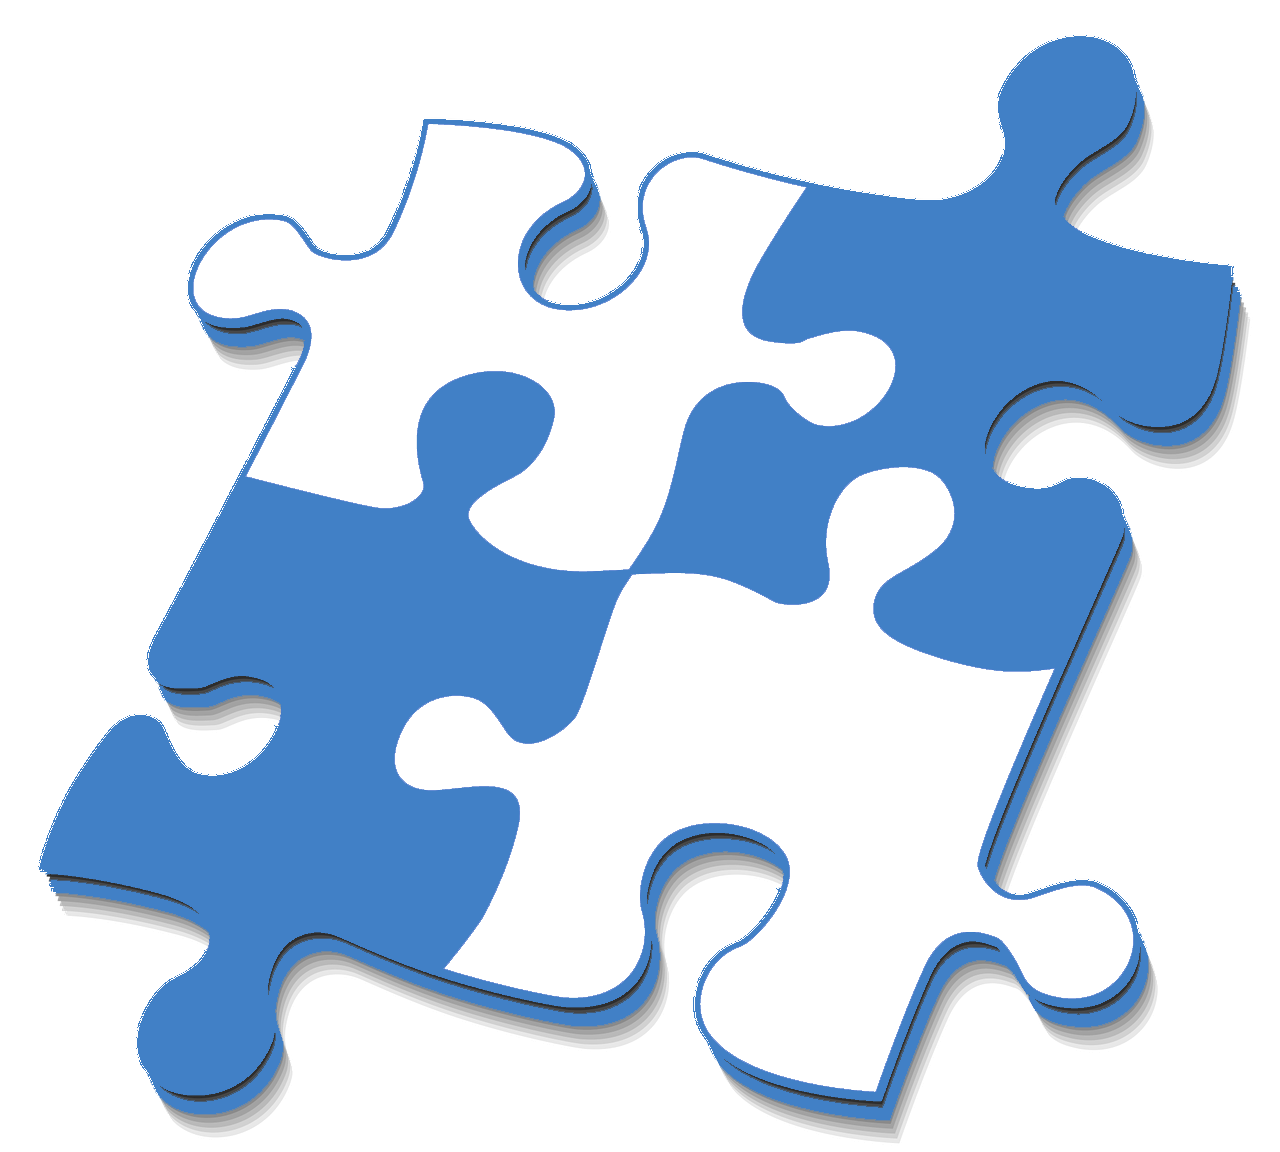 Puzzle clipart aspergers. Help hope solutions helping